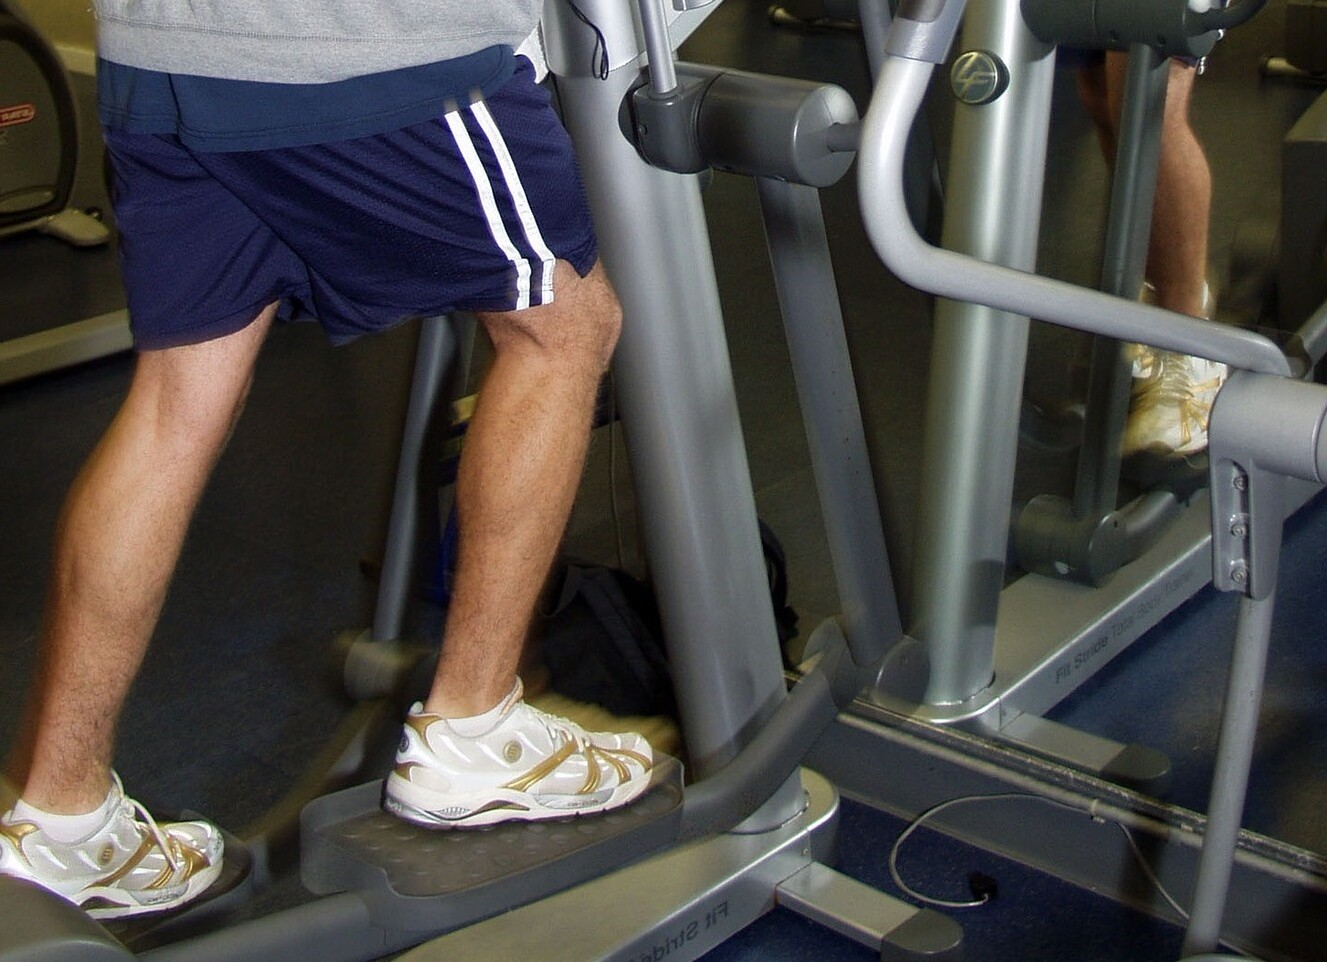 Fun Backward Pedaling Variations on the Elliptical Trainer